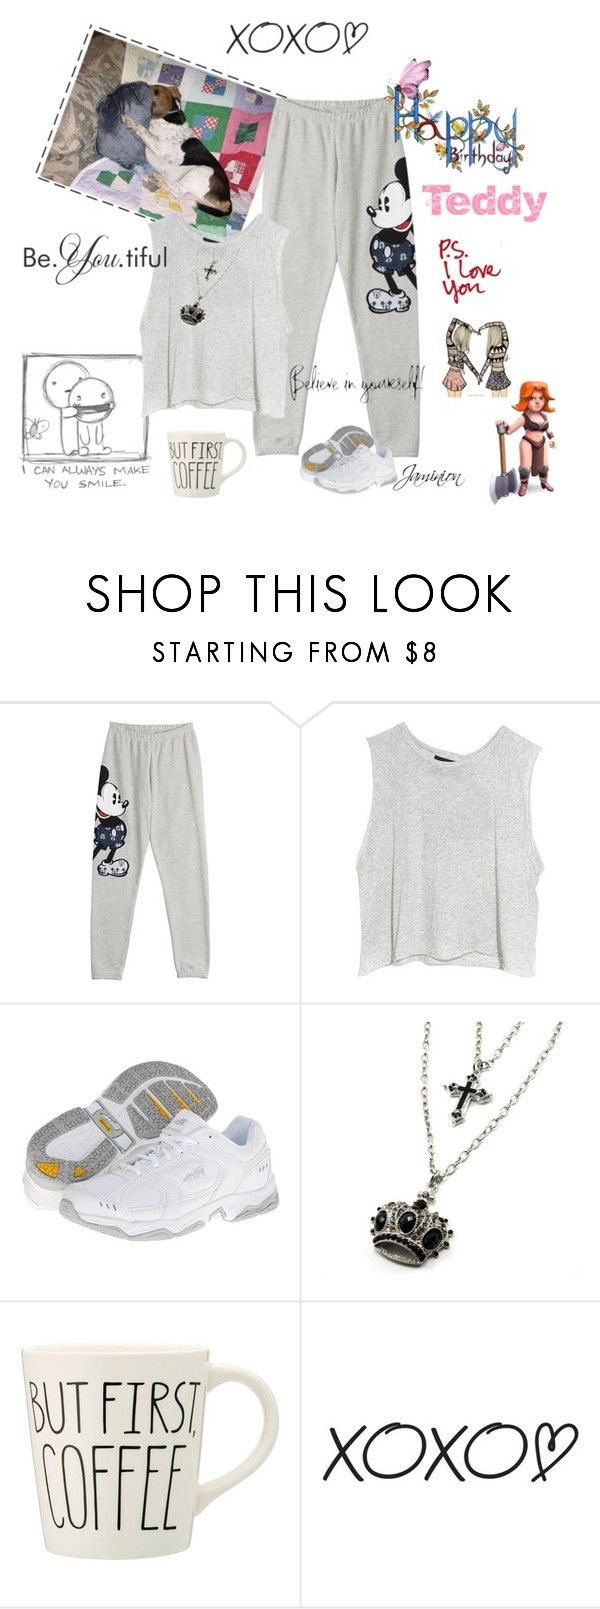 """""""Shelly and Puparazzi"""" by bubbasjewels ❤ liked on Polyvore featuring Paul & Joe Sister, MINKPINK, Avia and WALL"""